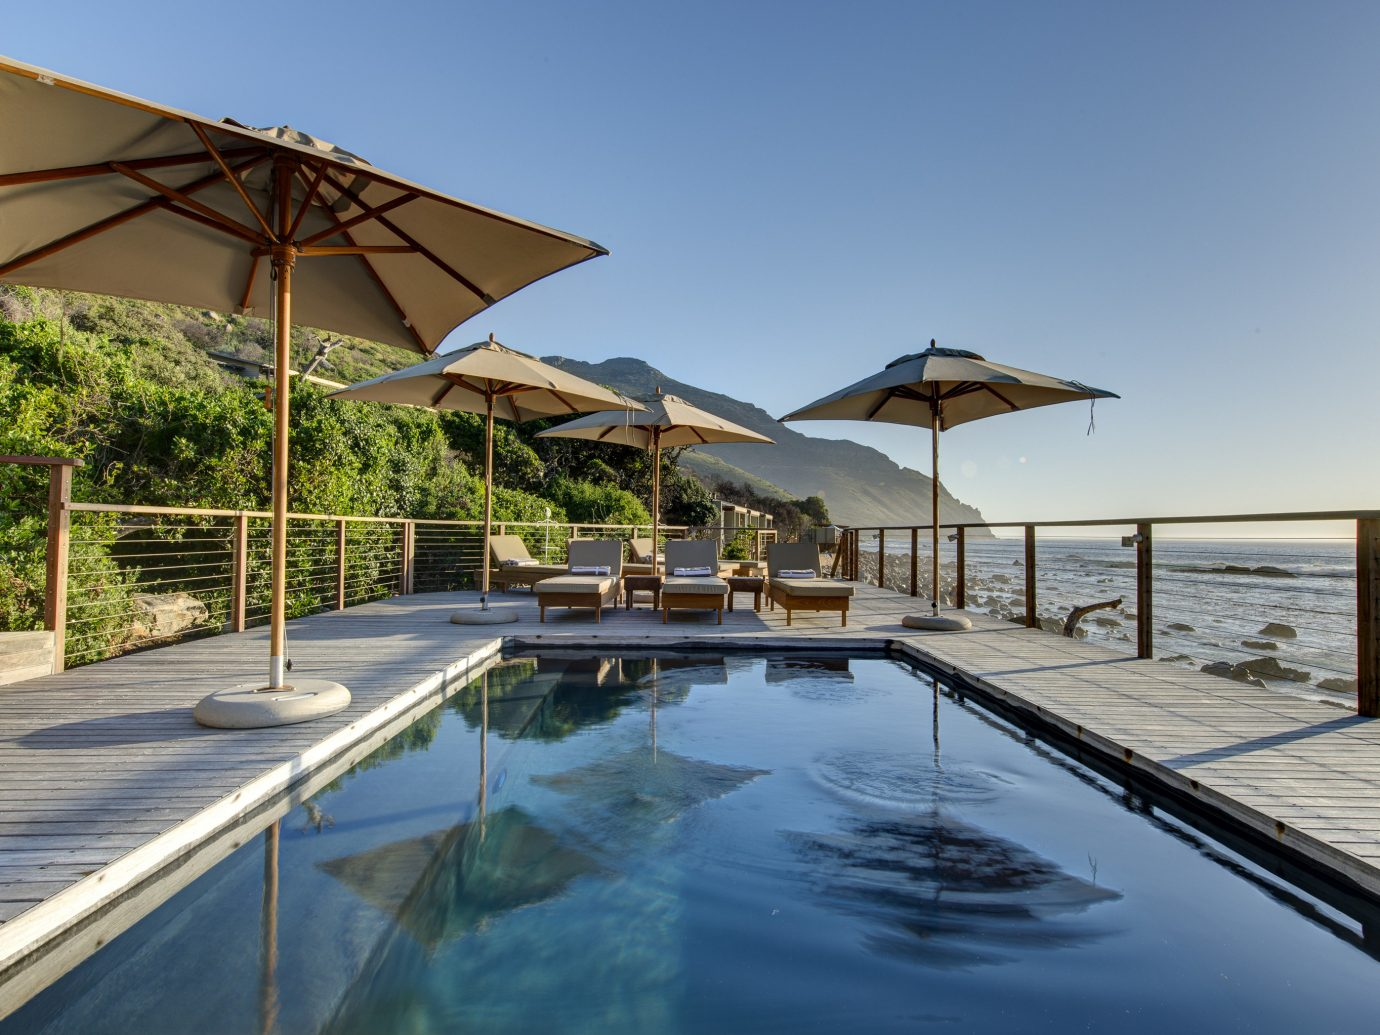 Hotels sky outdoor swimming pool leisure property Resort estate vacation Villa real estate Sea shore day